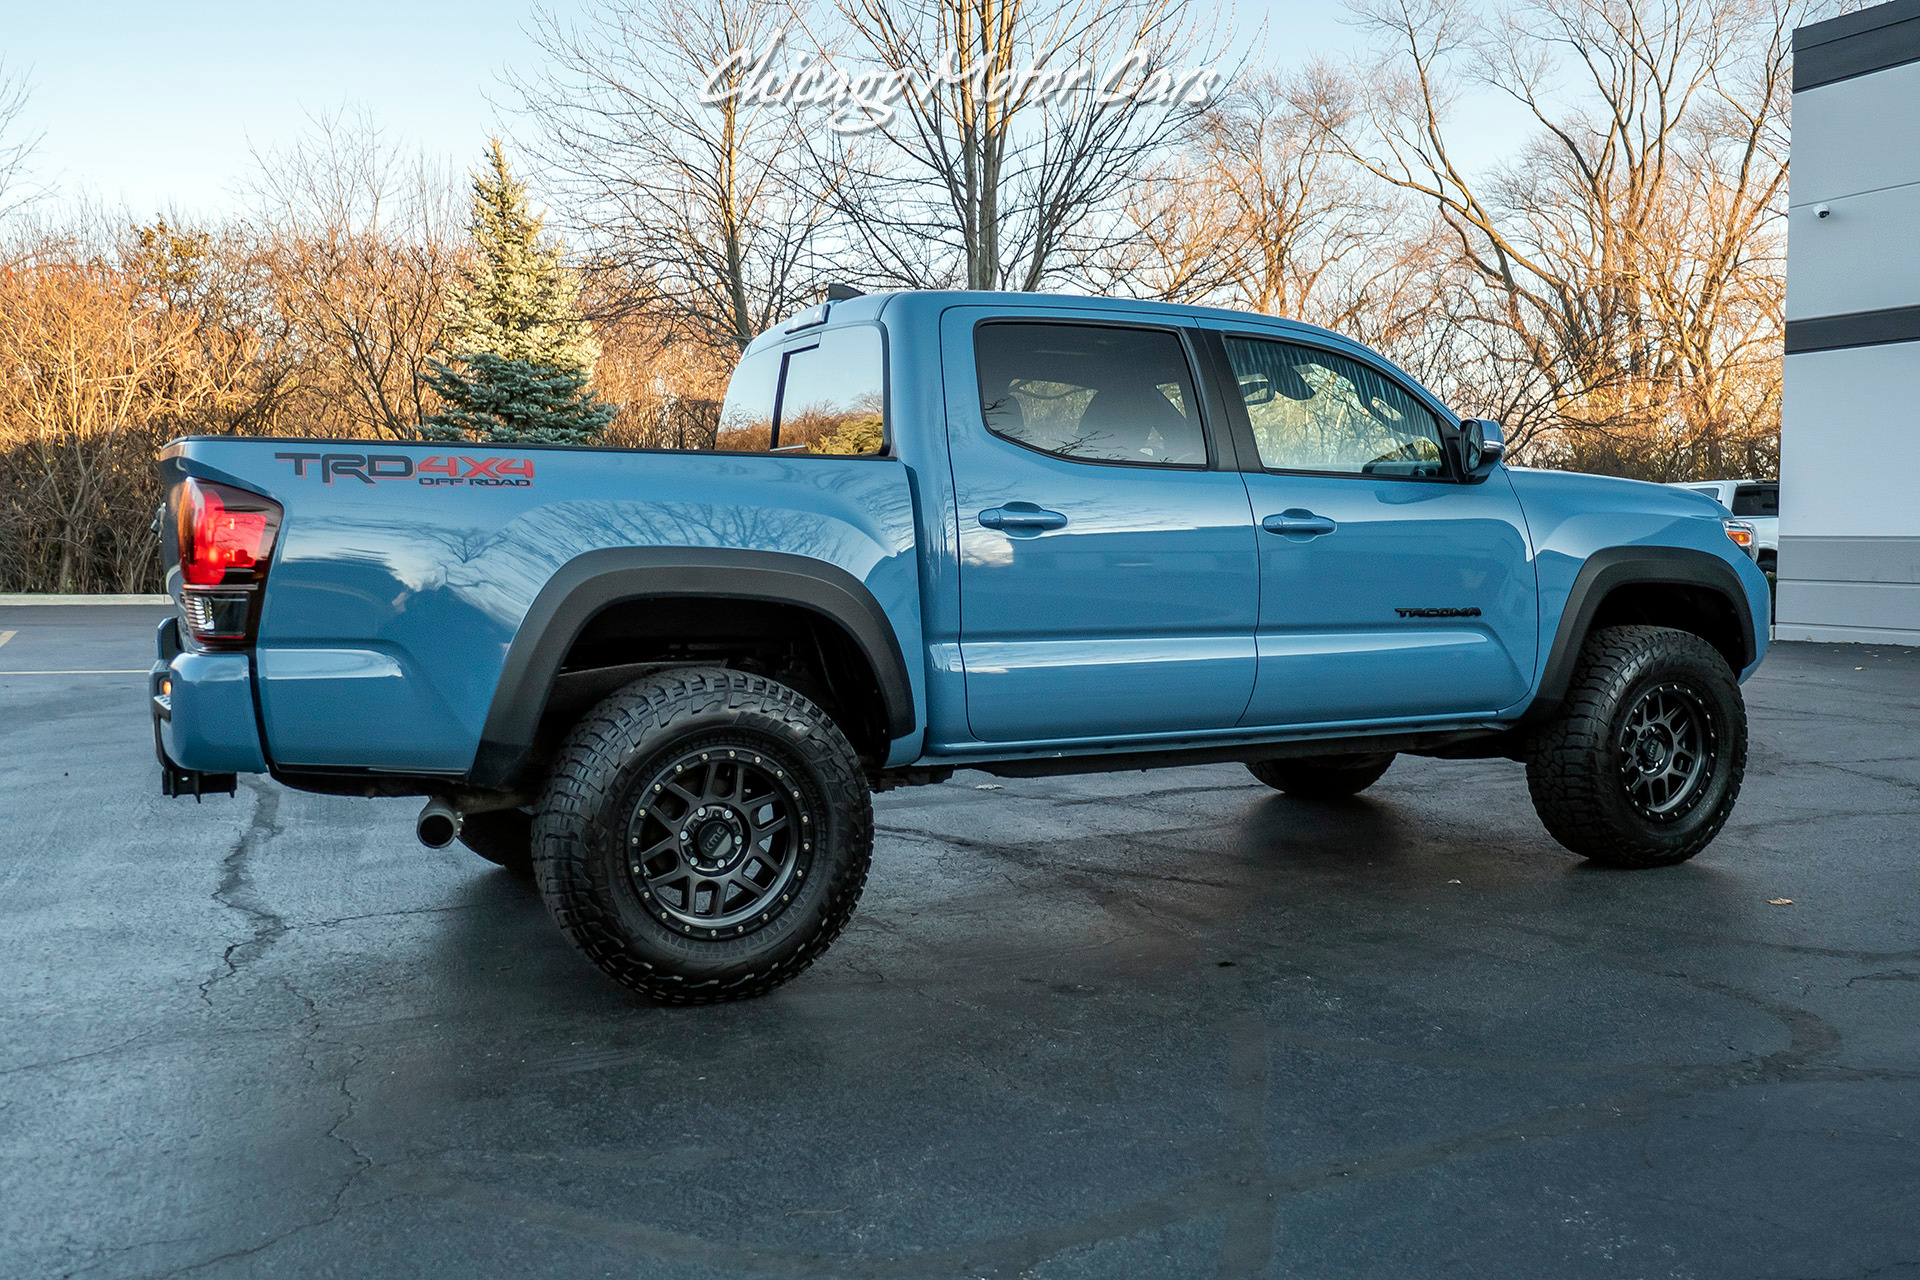 Used-2019-Toyota-Tacoma-TRD-Off-Road-4x4-Lifted-with-Upgraded-Tires-RARE-Calvary-Blue